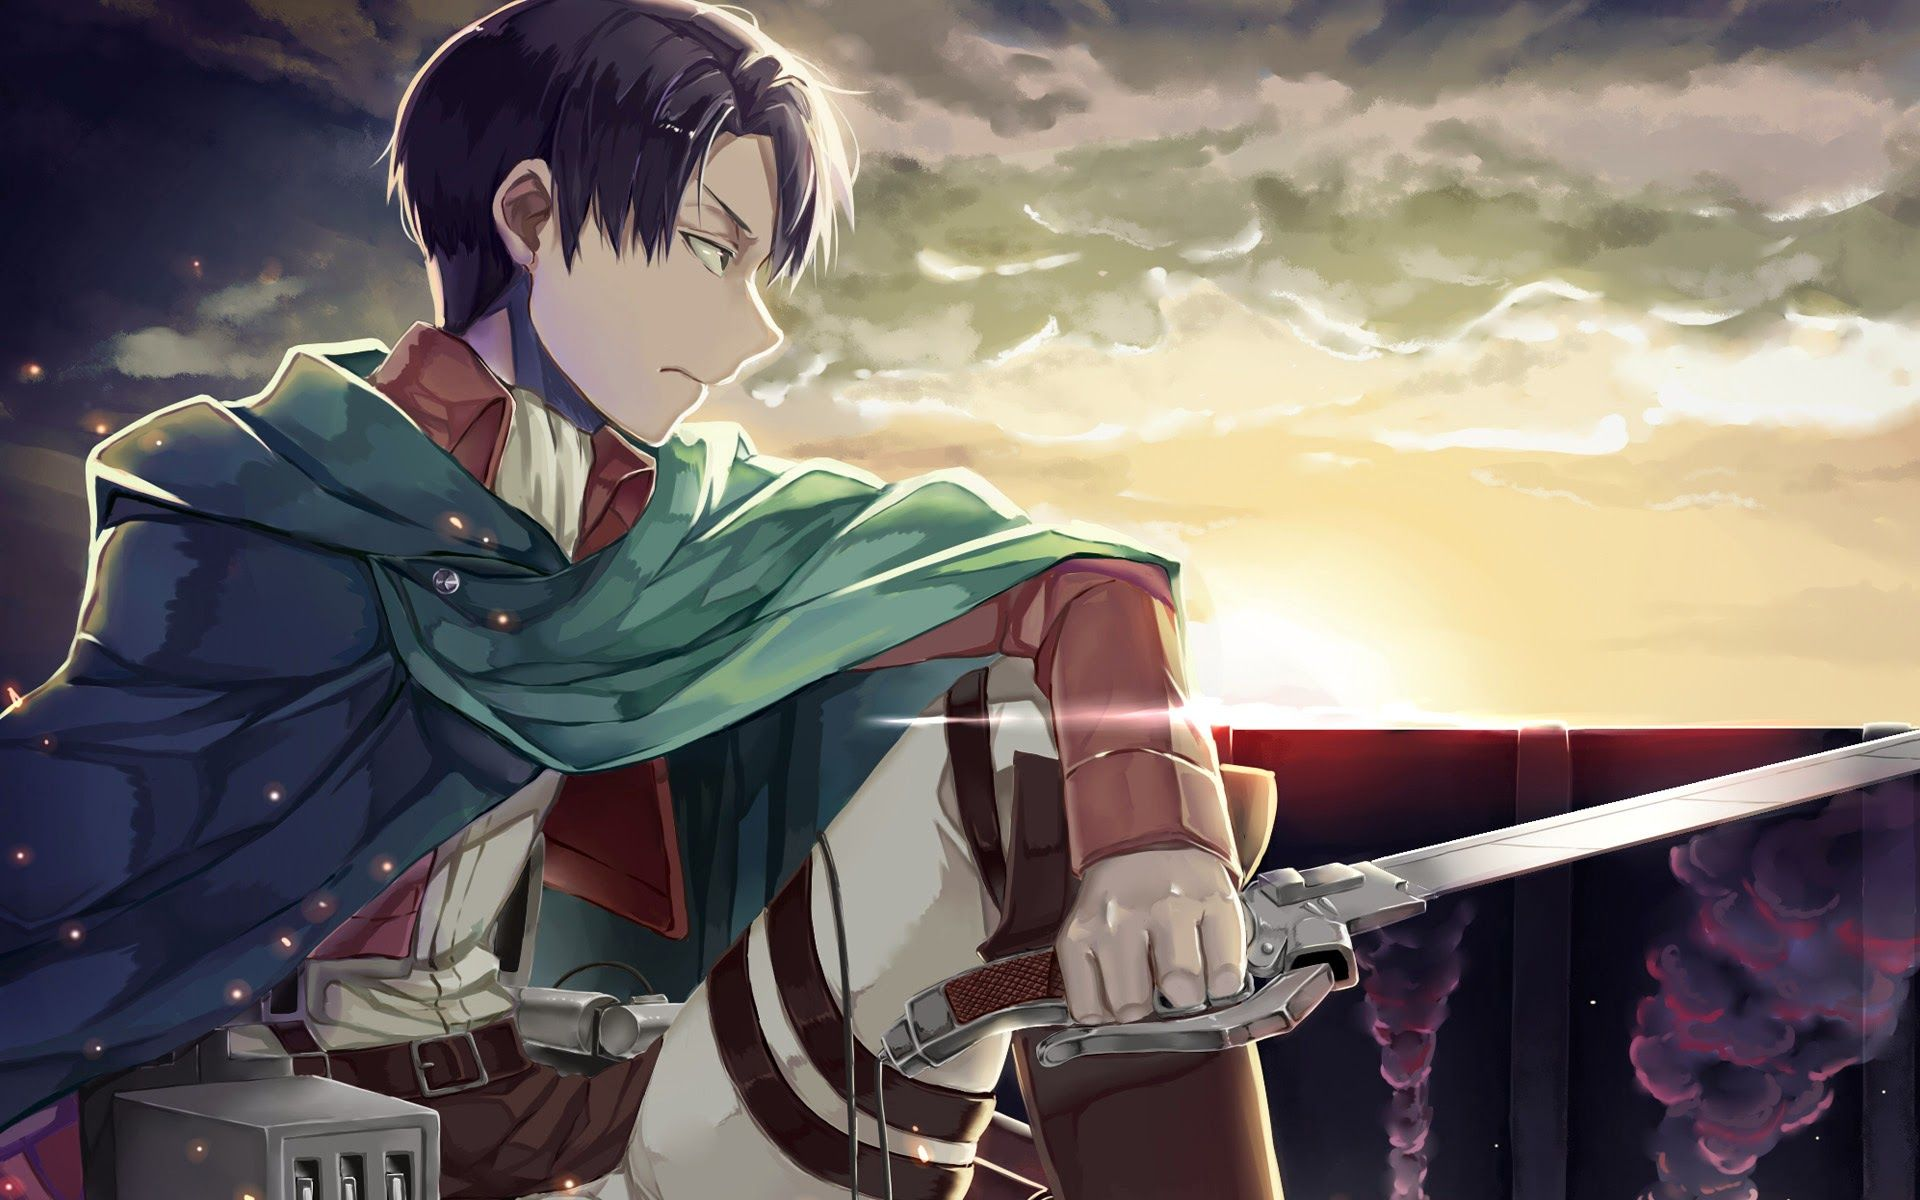 levi rivaille from Attack on Titan Attack on Titan